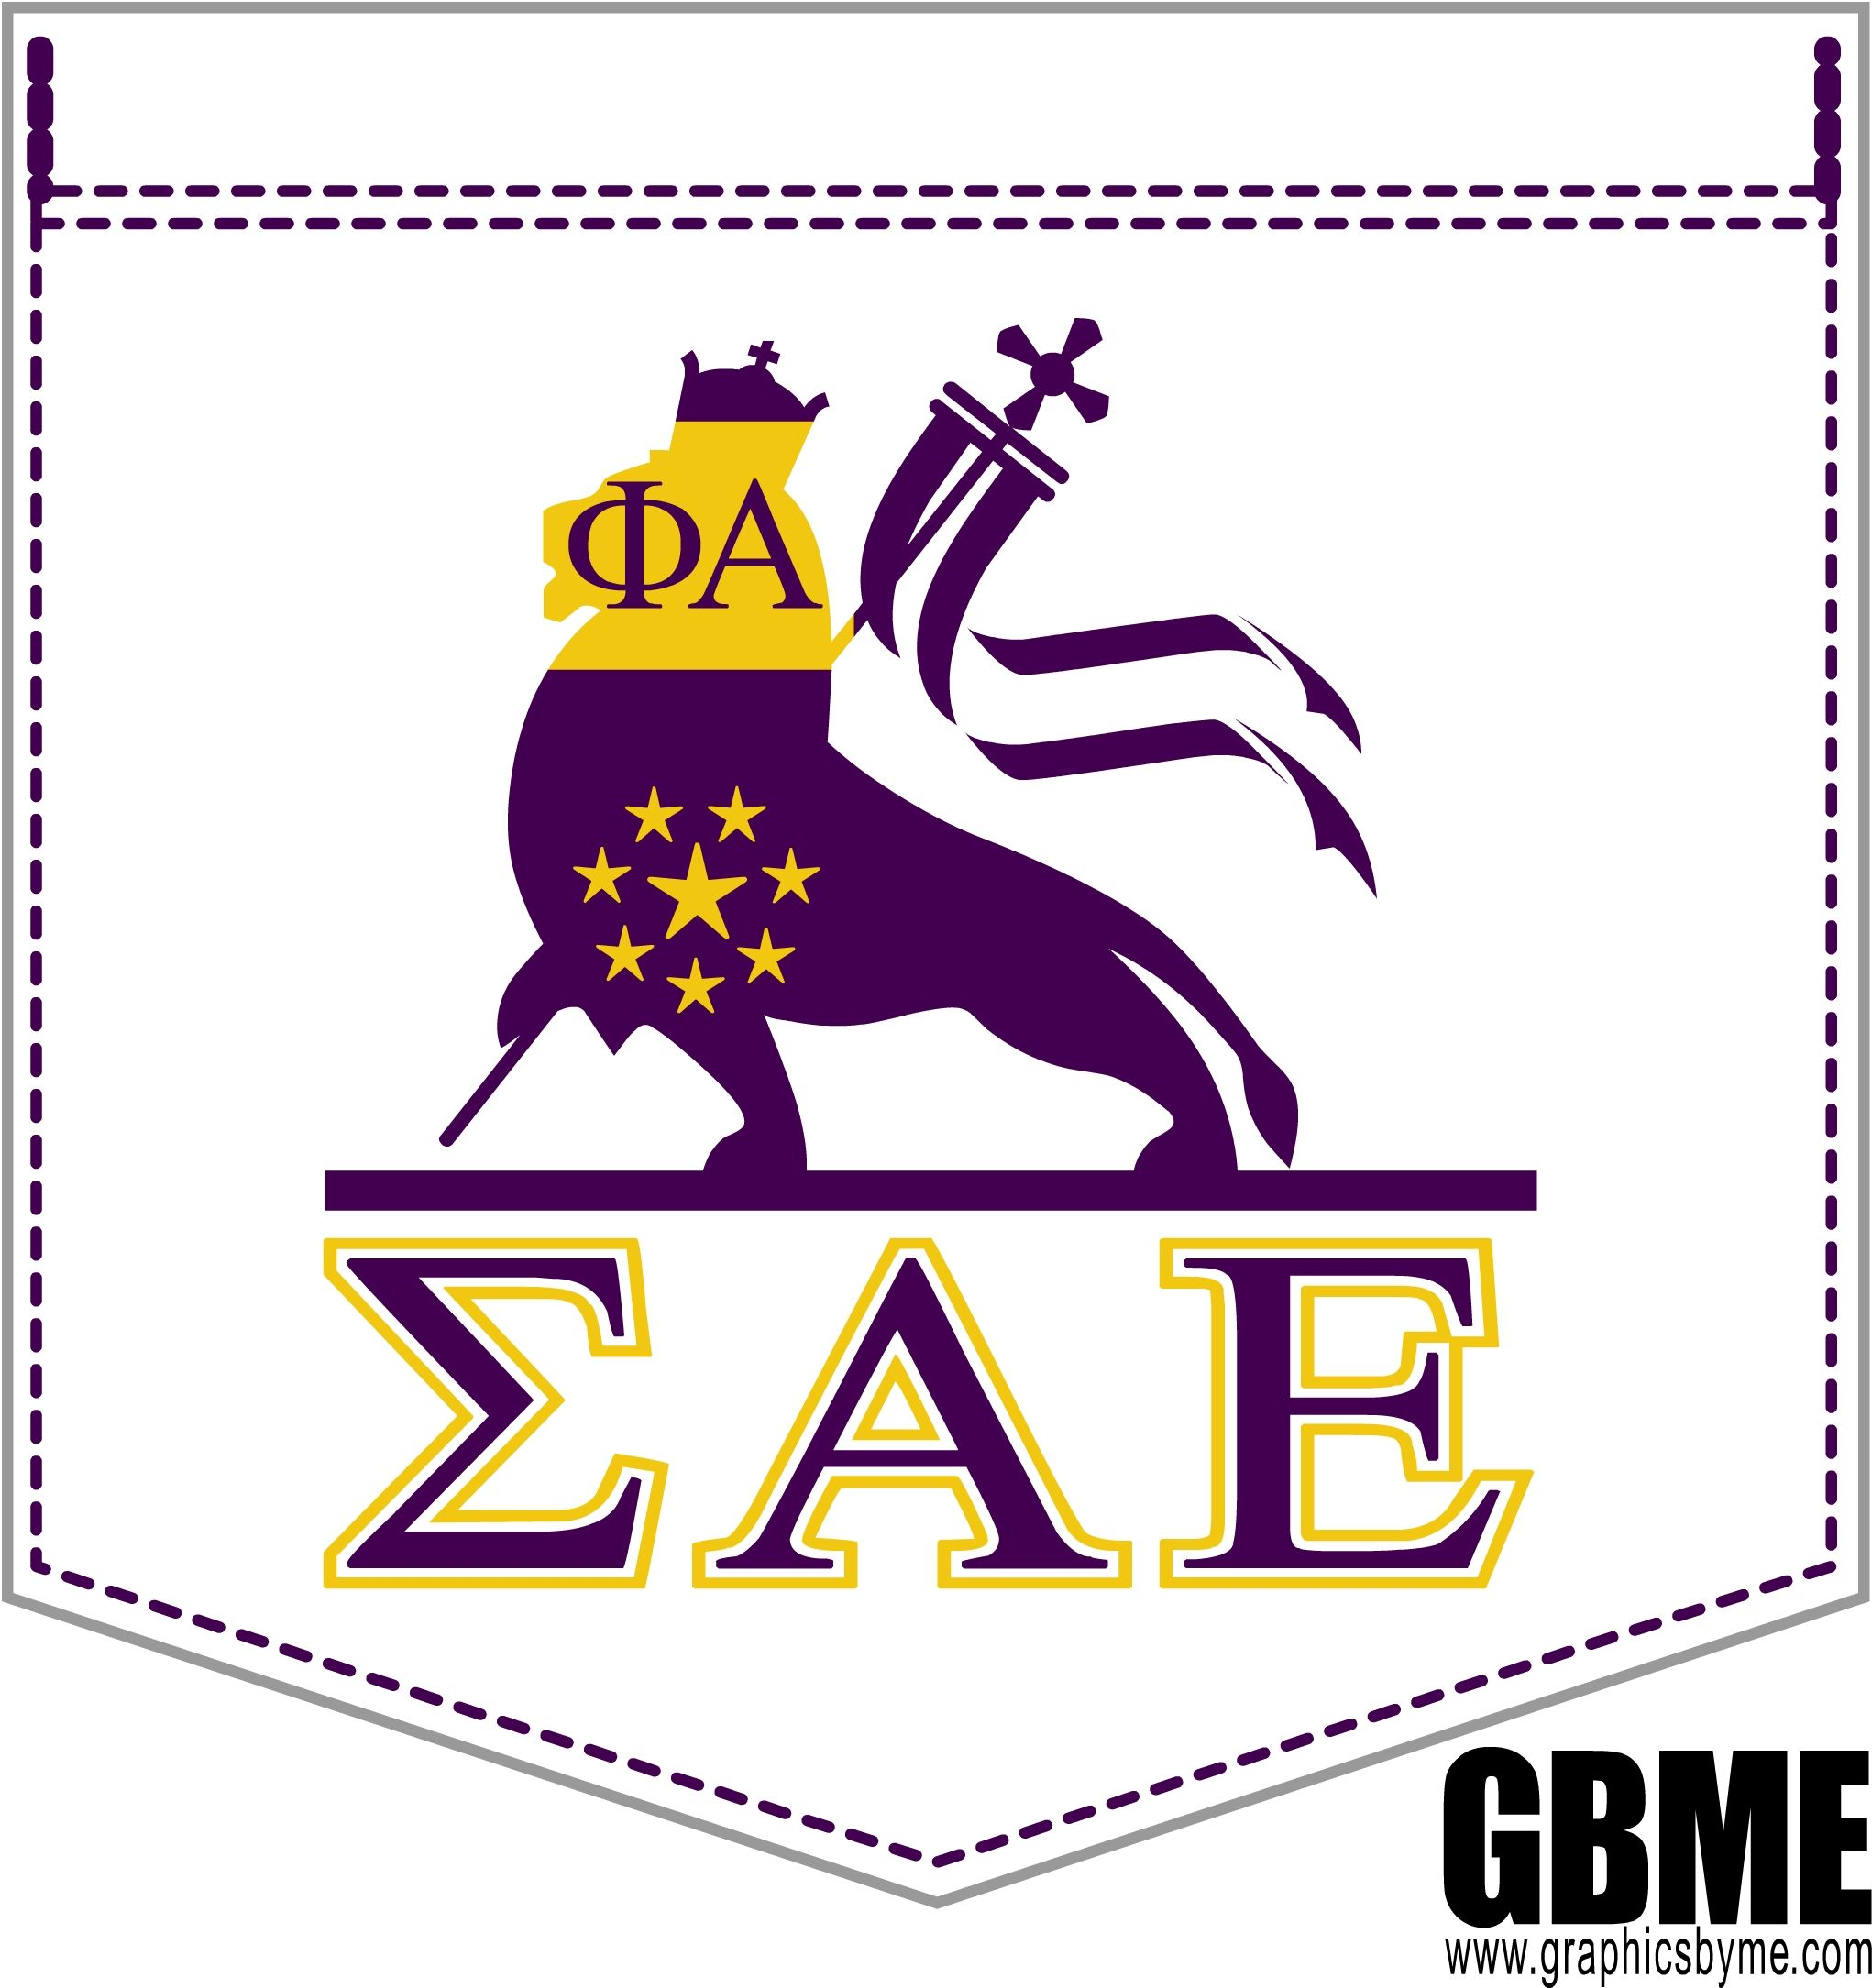 GBME Grophic designed for Sigma Alpha Epsilon Fraternity.